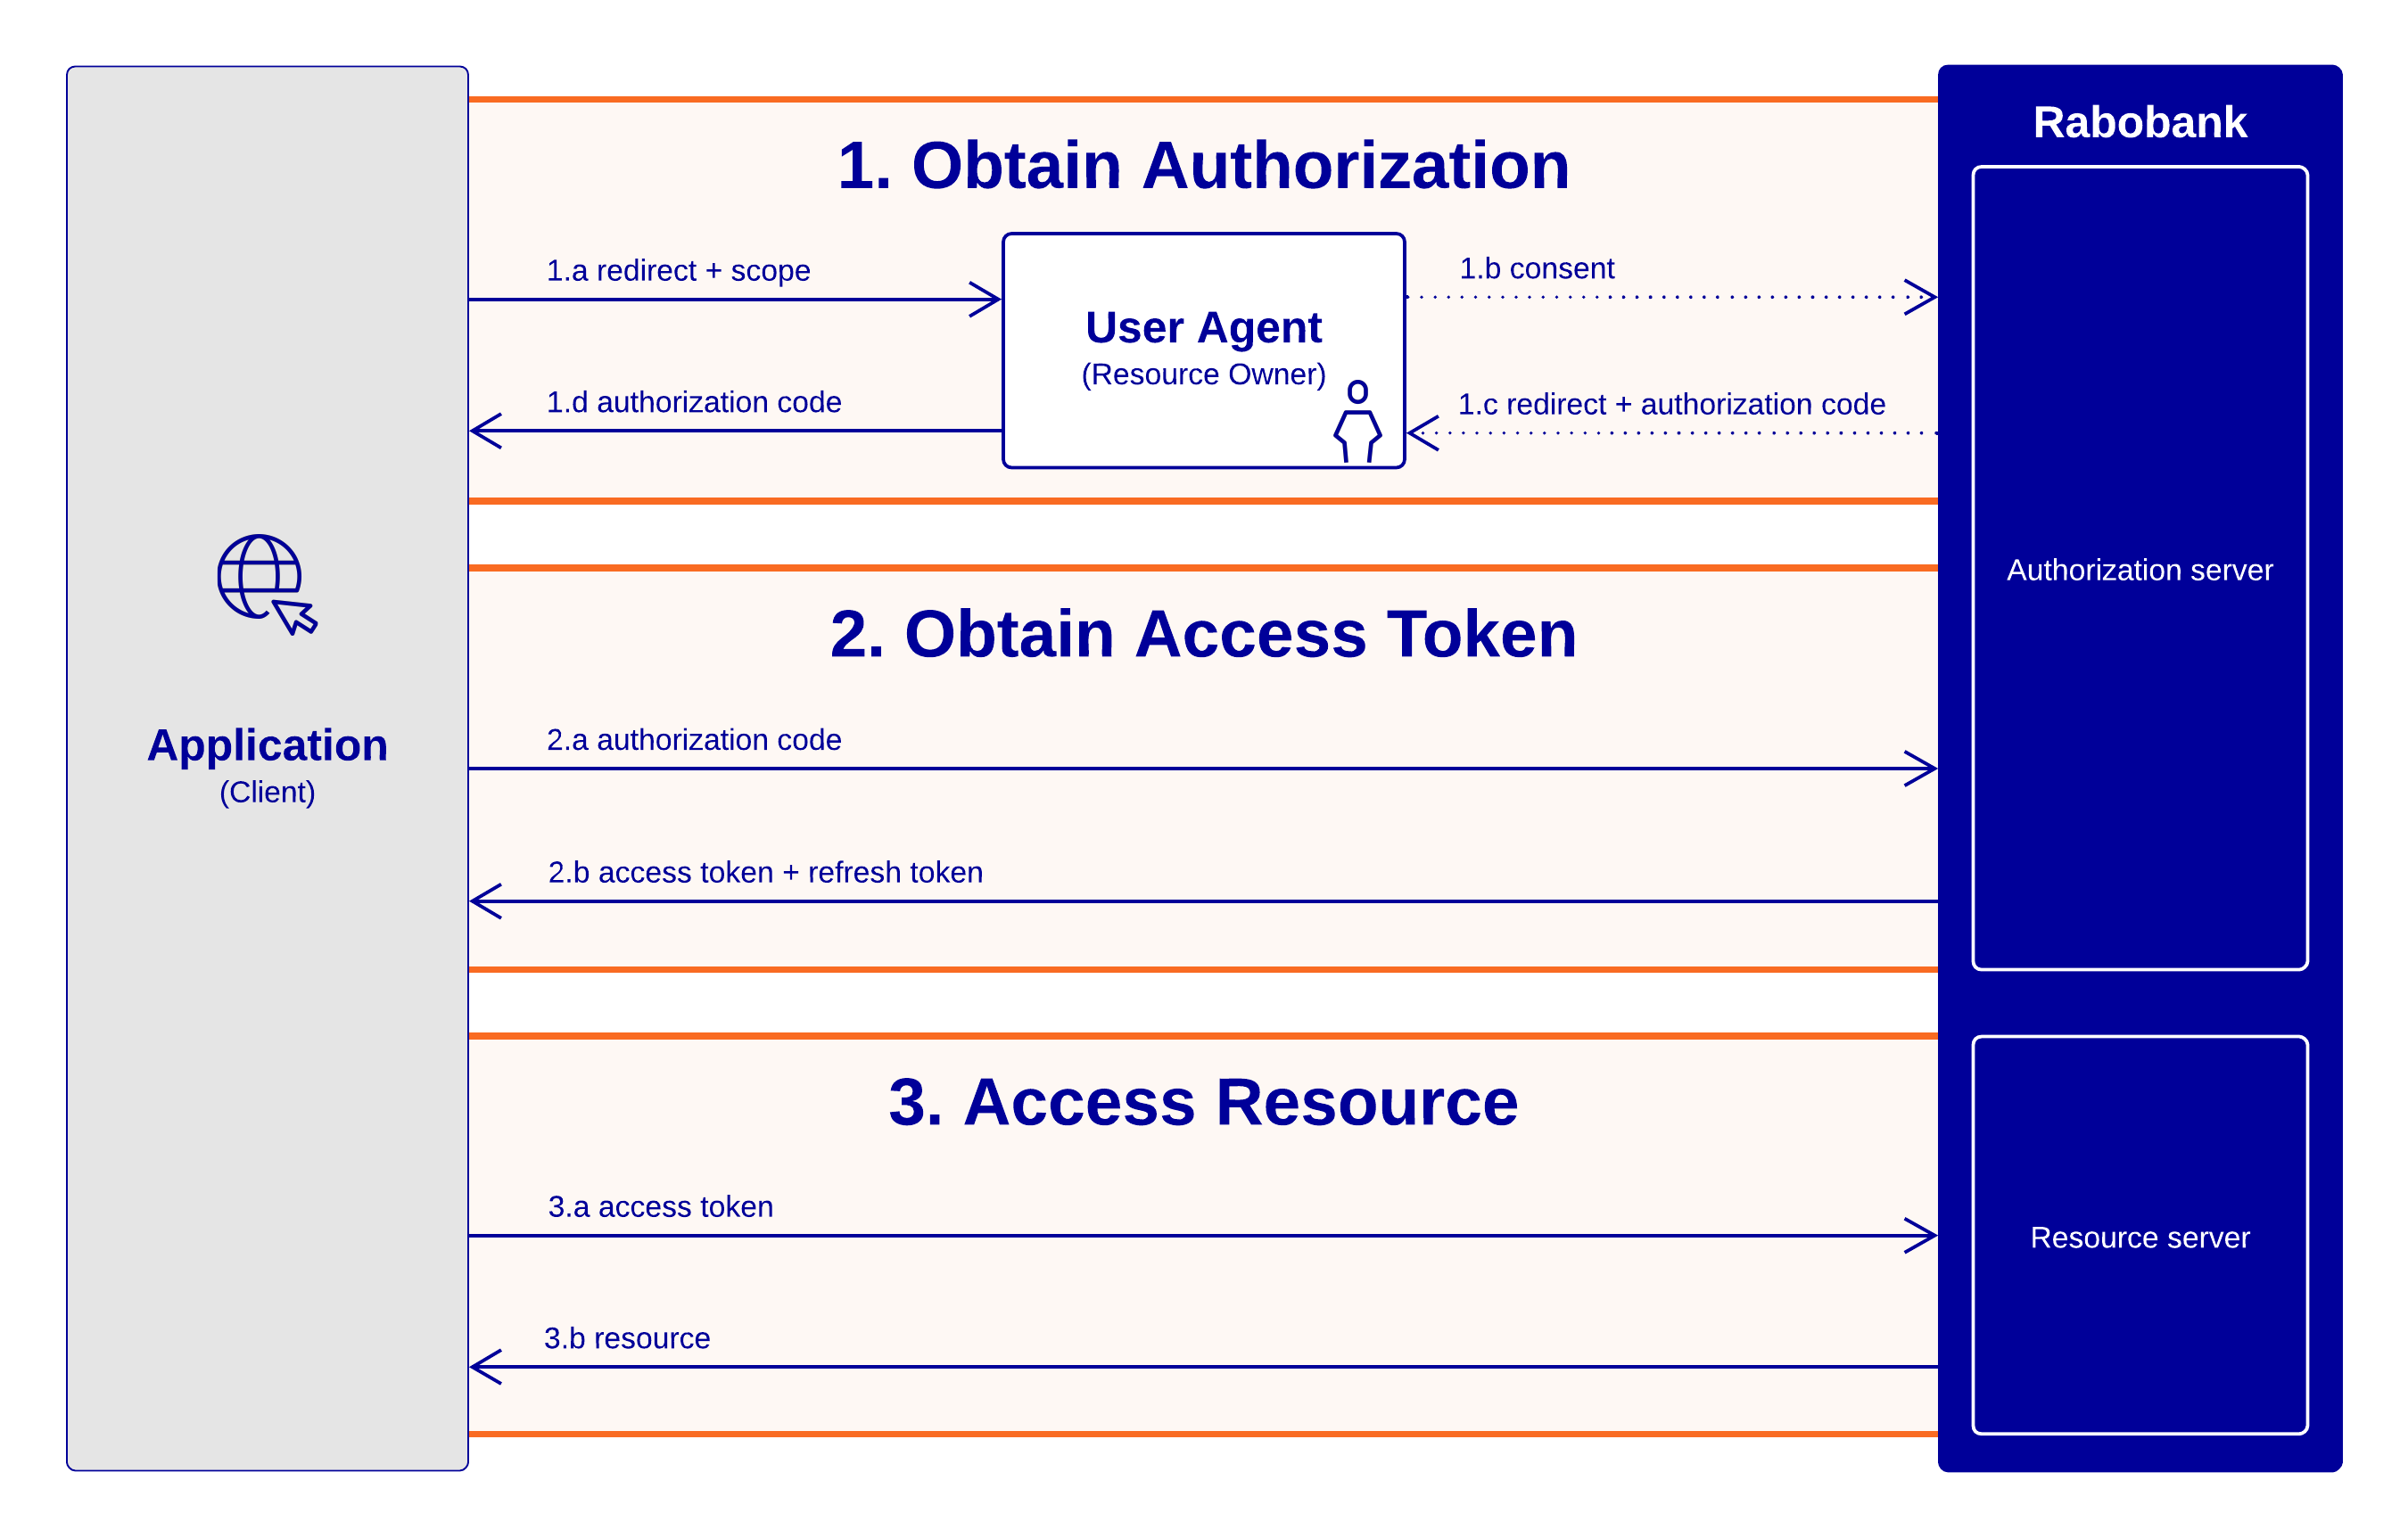 Rabobank OAuth 2.0 Authorization Code flow